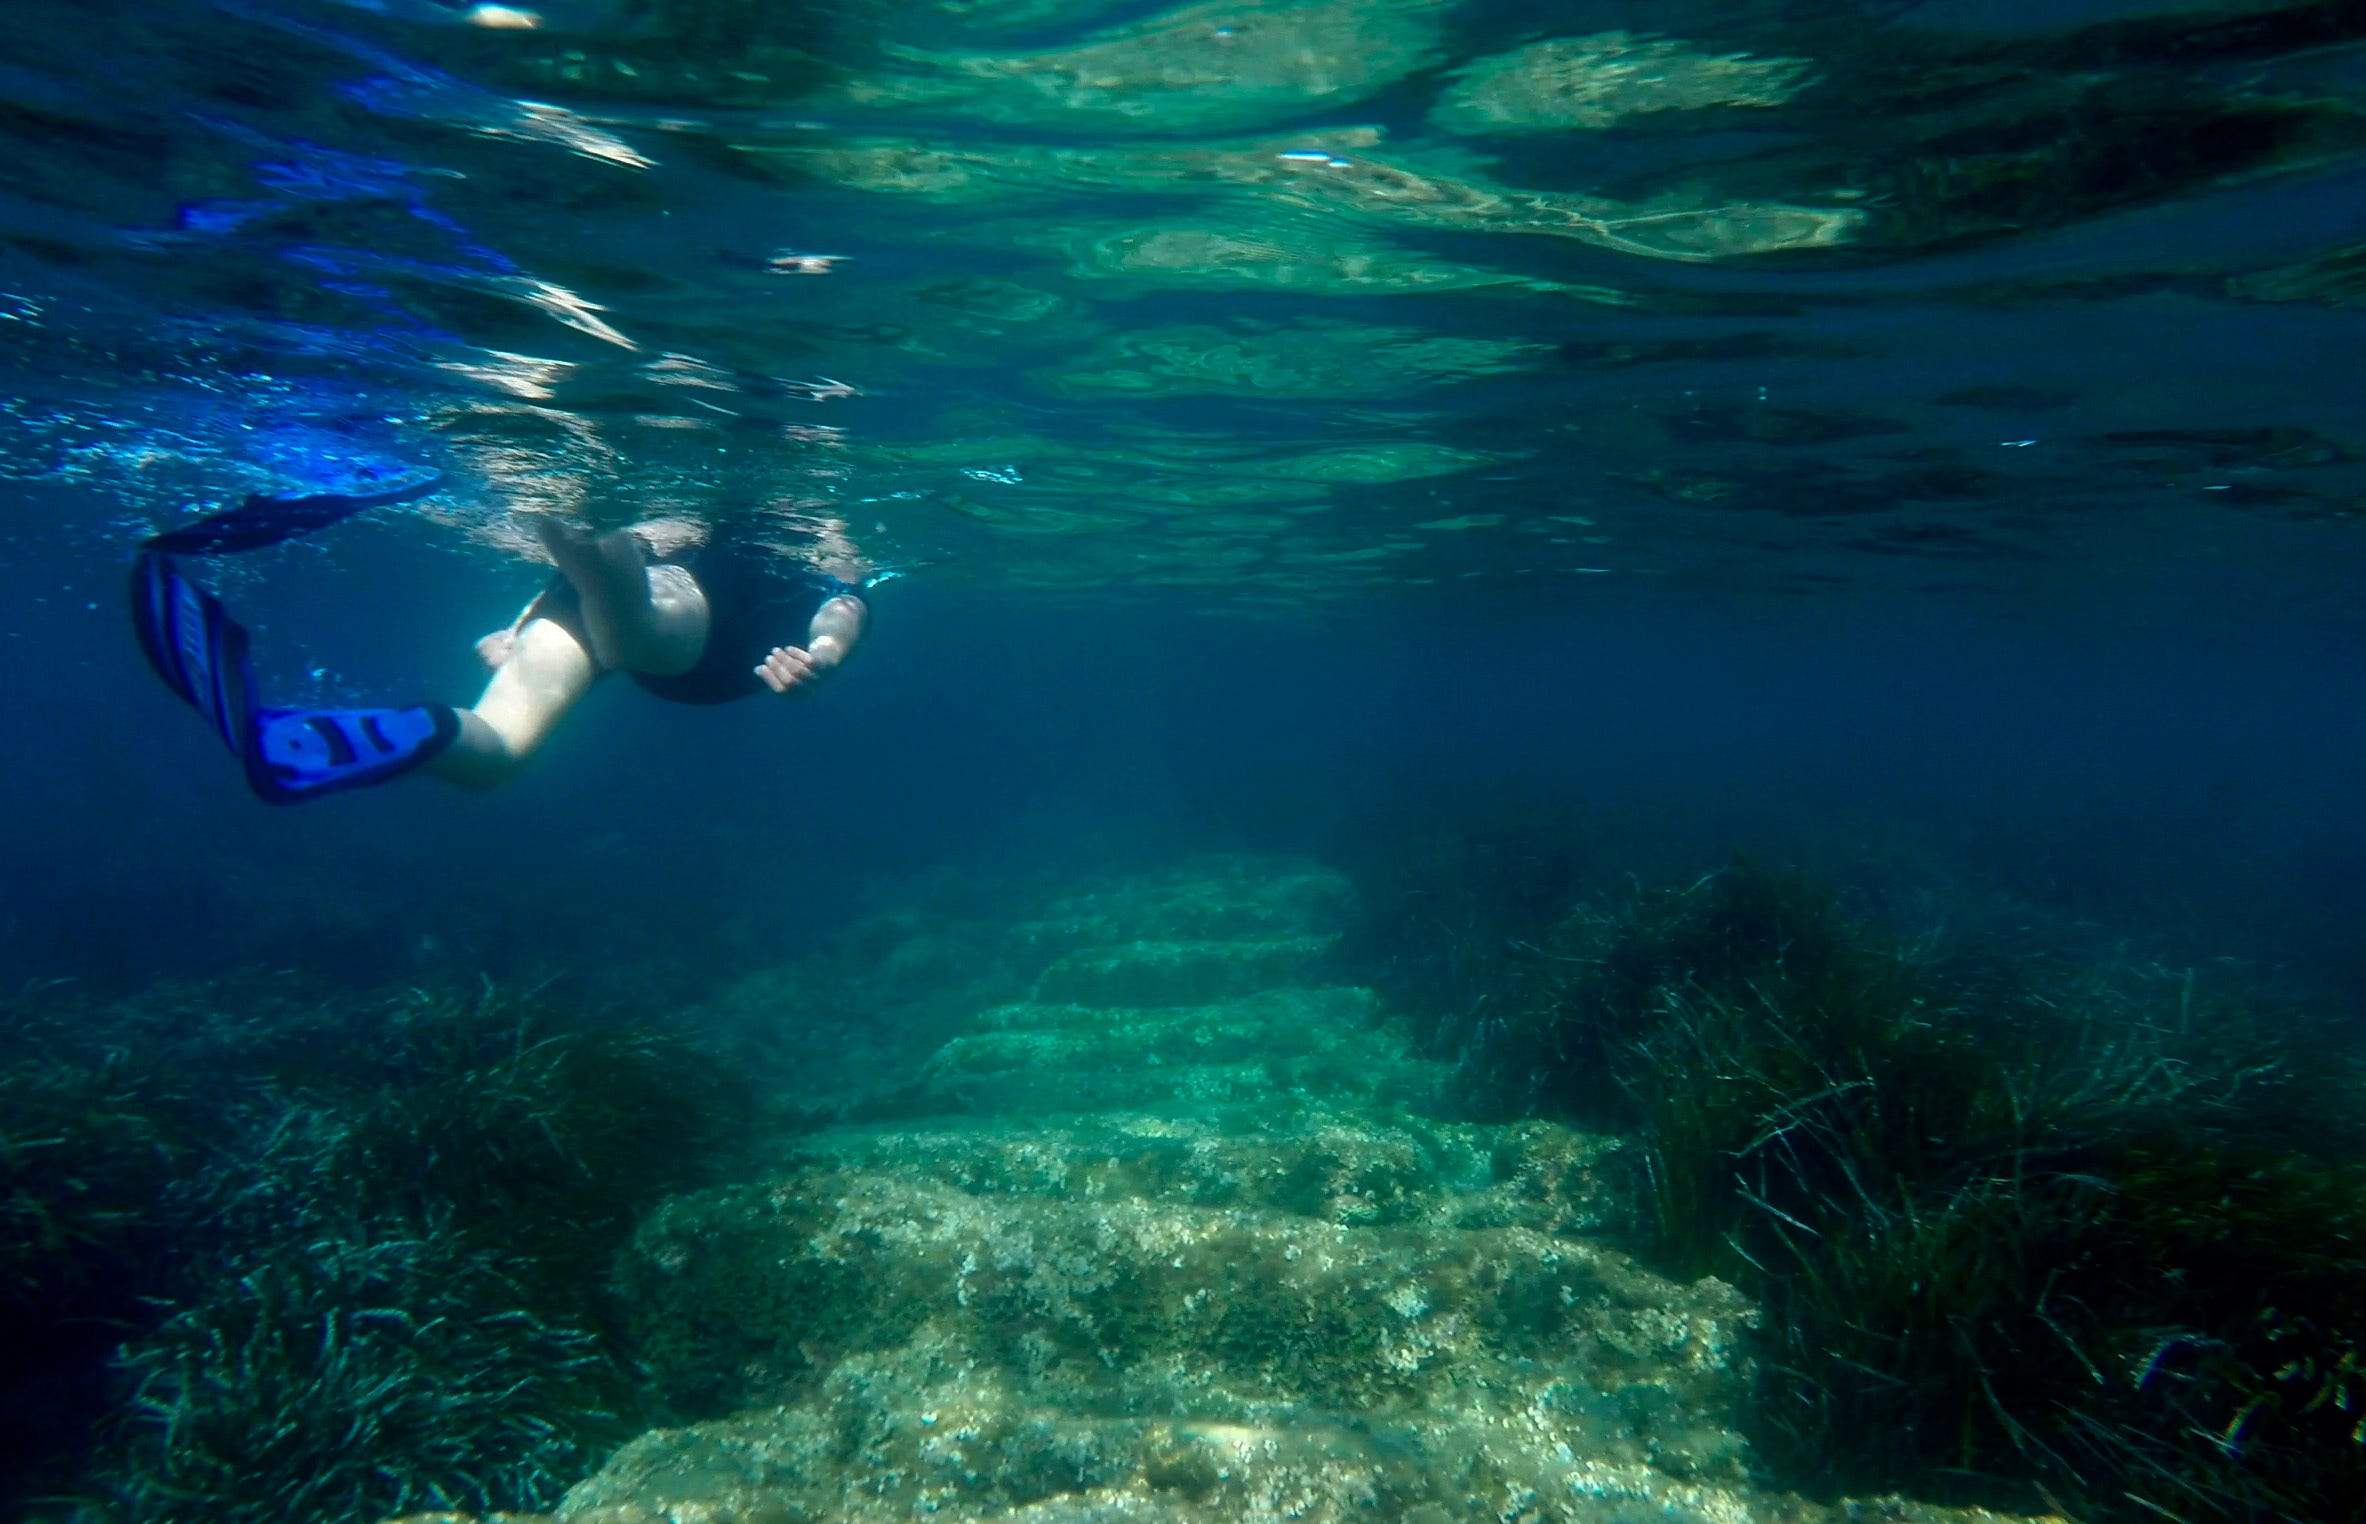 Dive in: Cyprus opens ancient harbor of Amathus in attempt to lure tourists